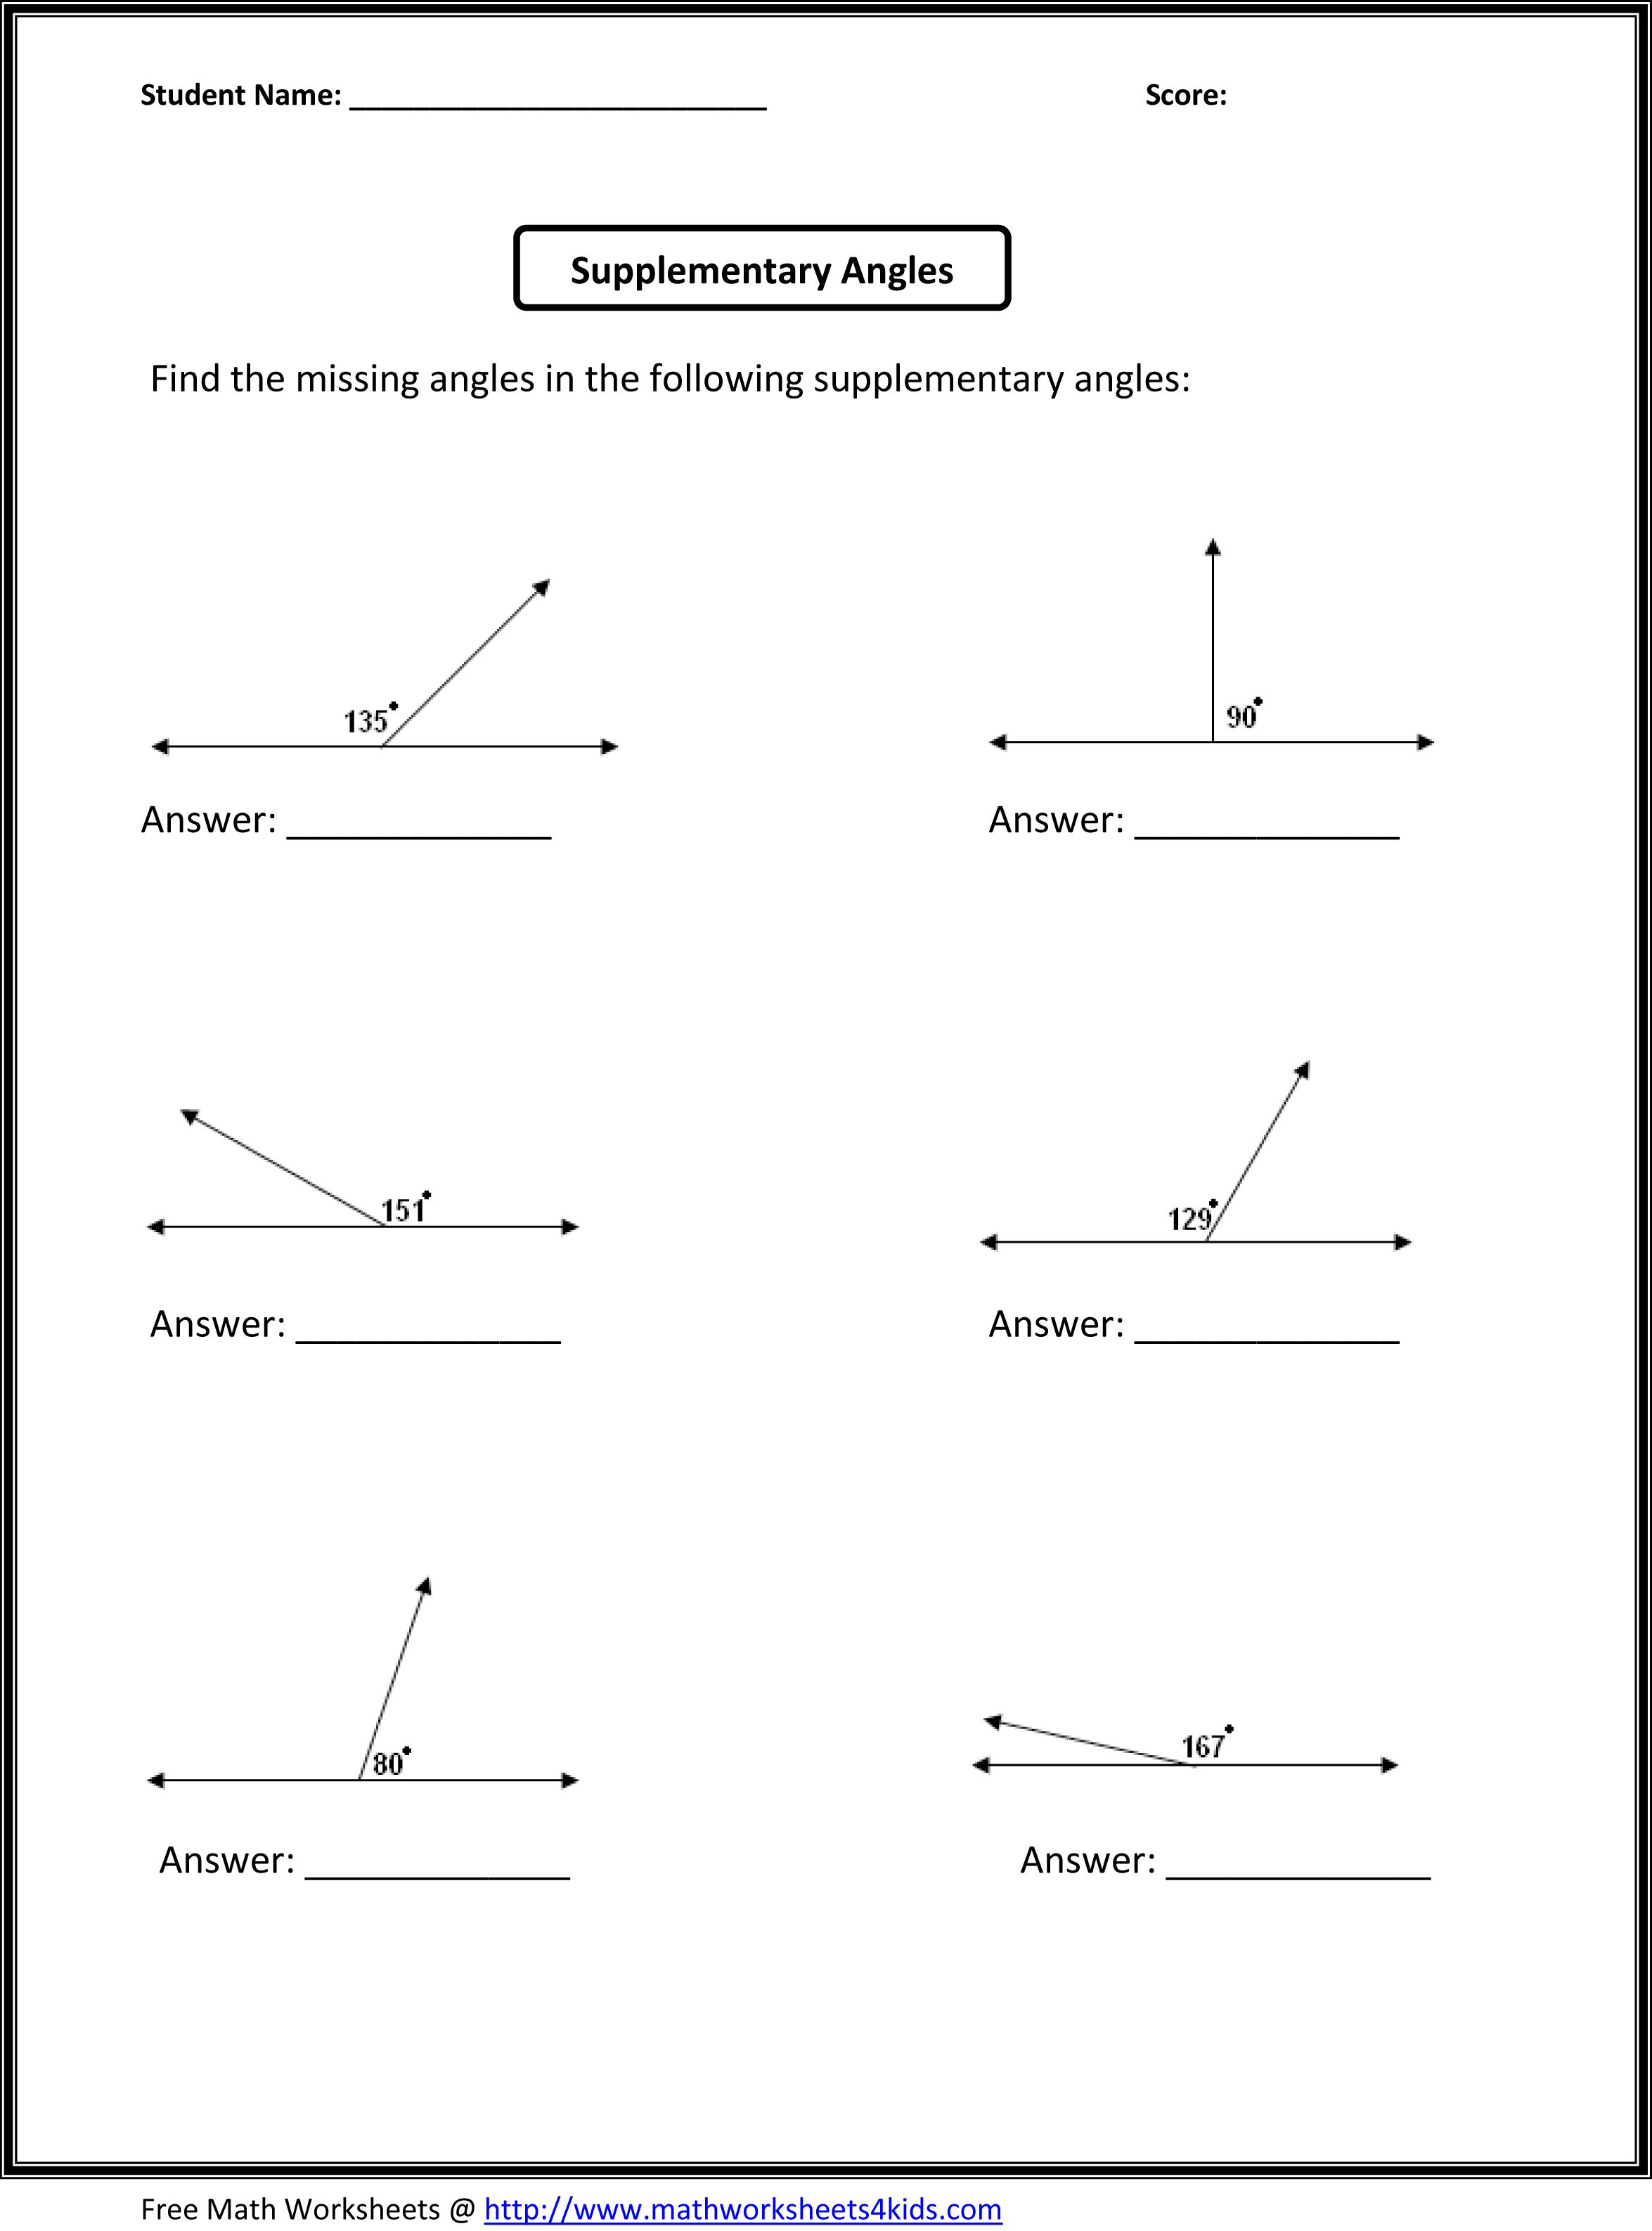 Worksheets Geometry 7th Grade Worksheets supplementary angles classroom madness pinterest math sixth grade worksheets